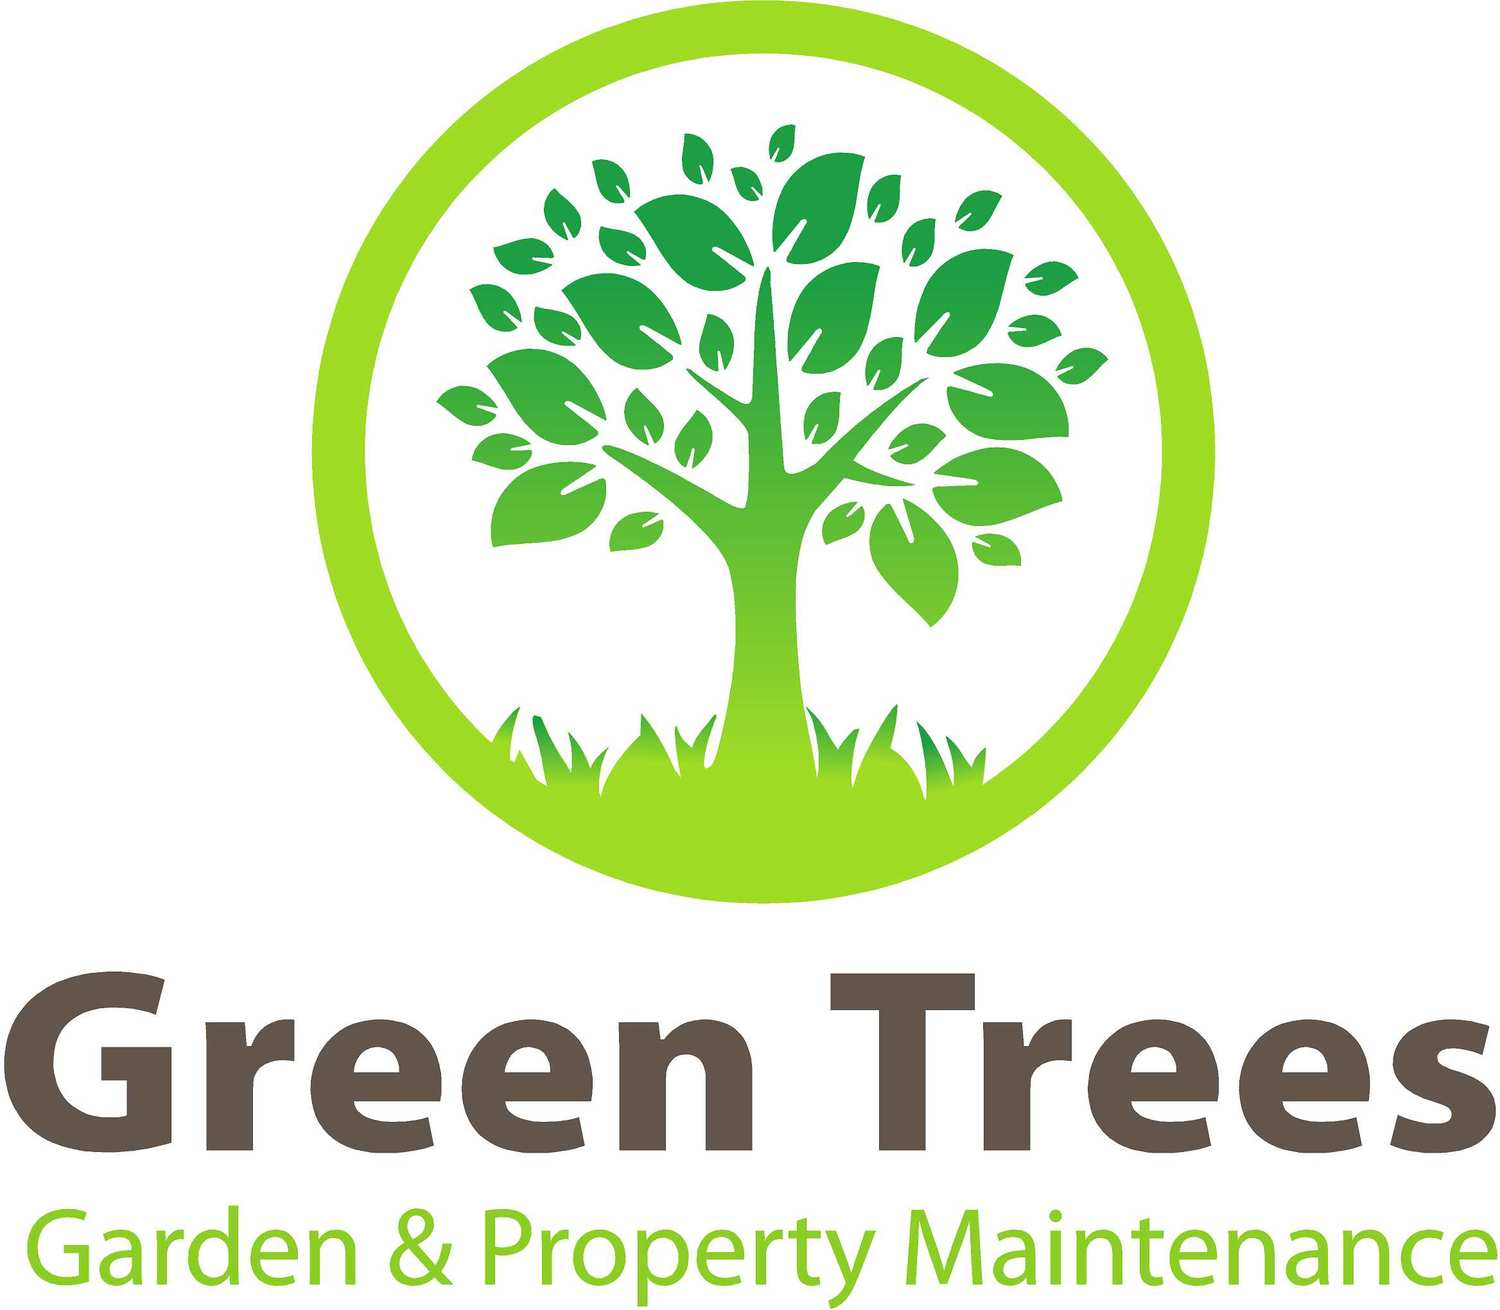 Green Trees Garden & Property Maintenance